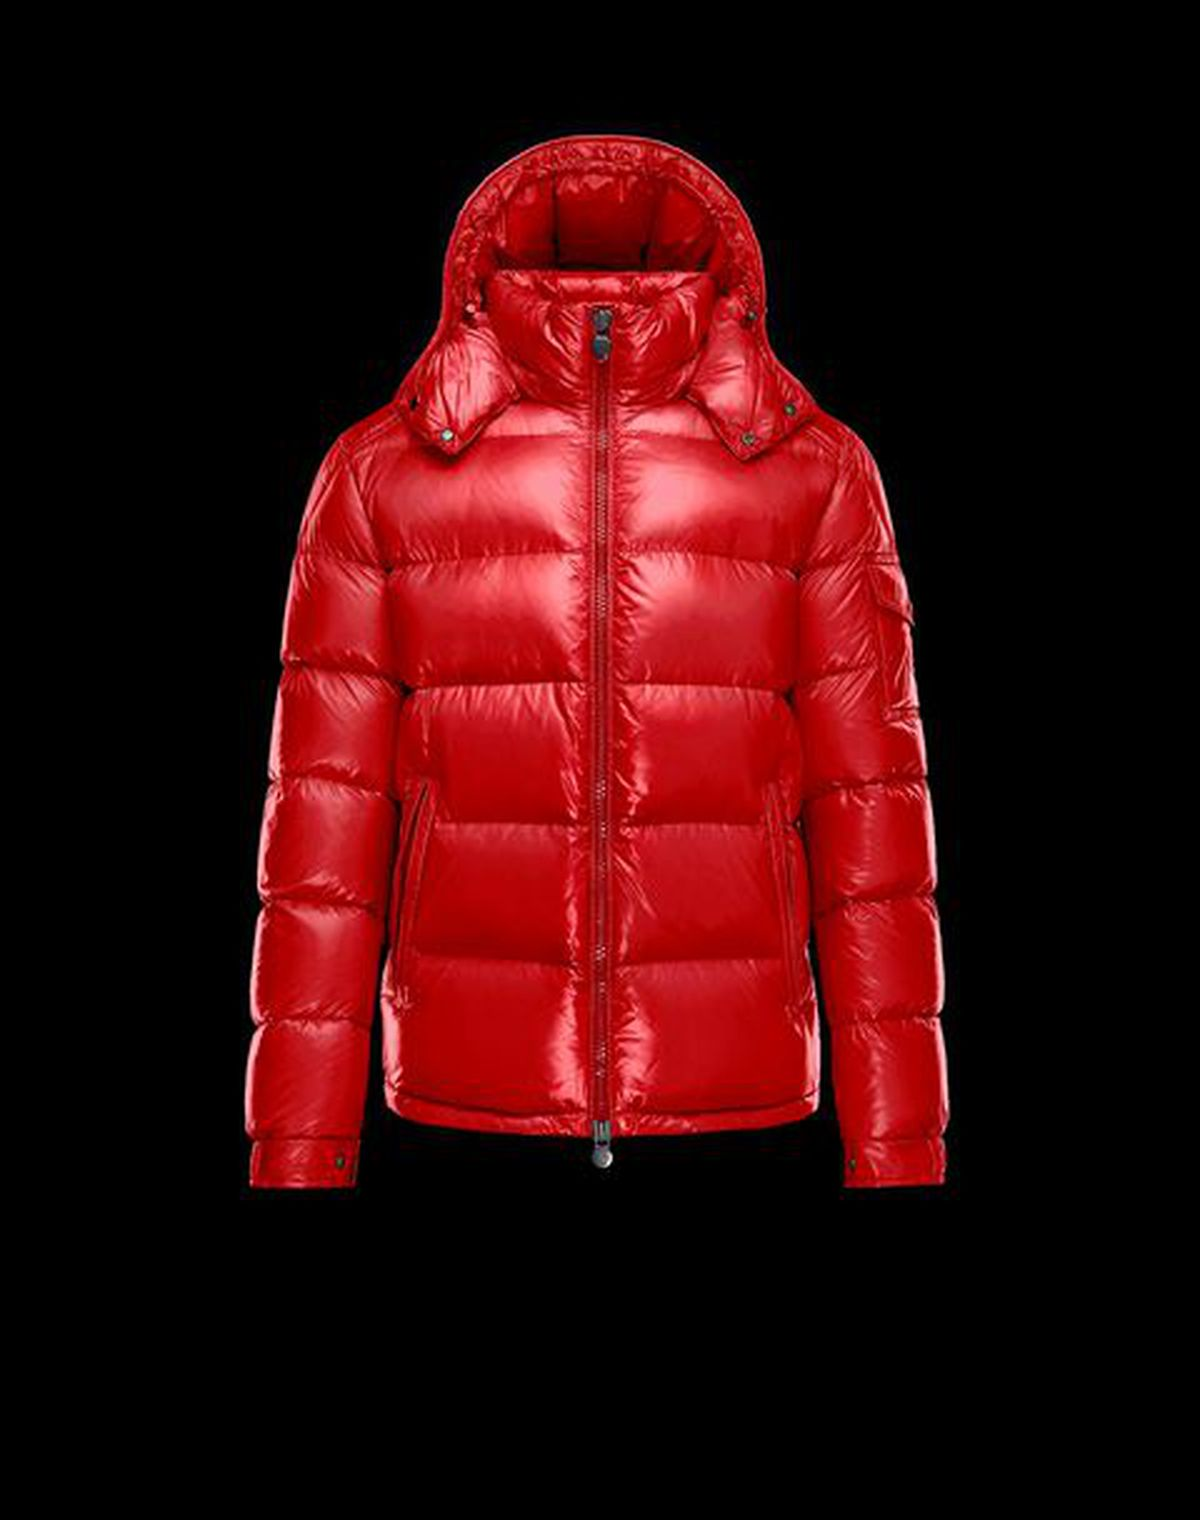 moncler jacket hotline bling